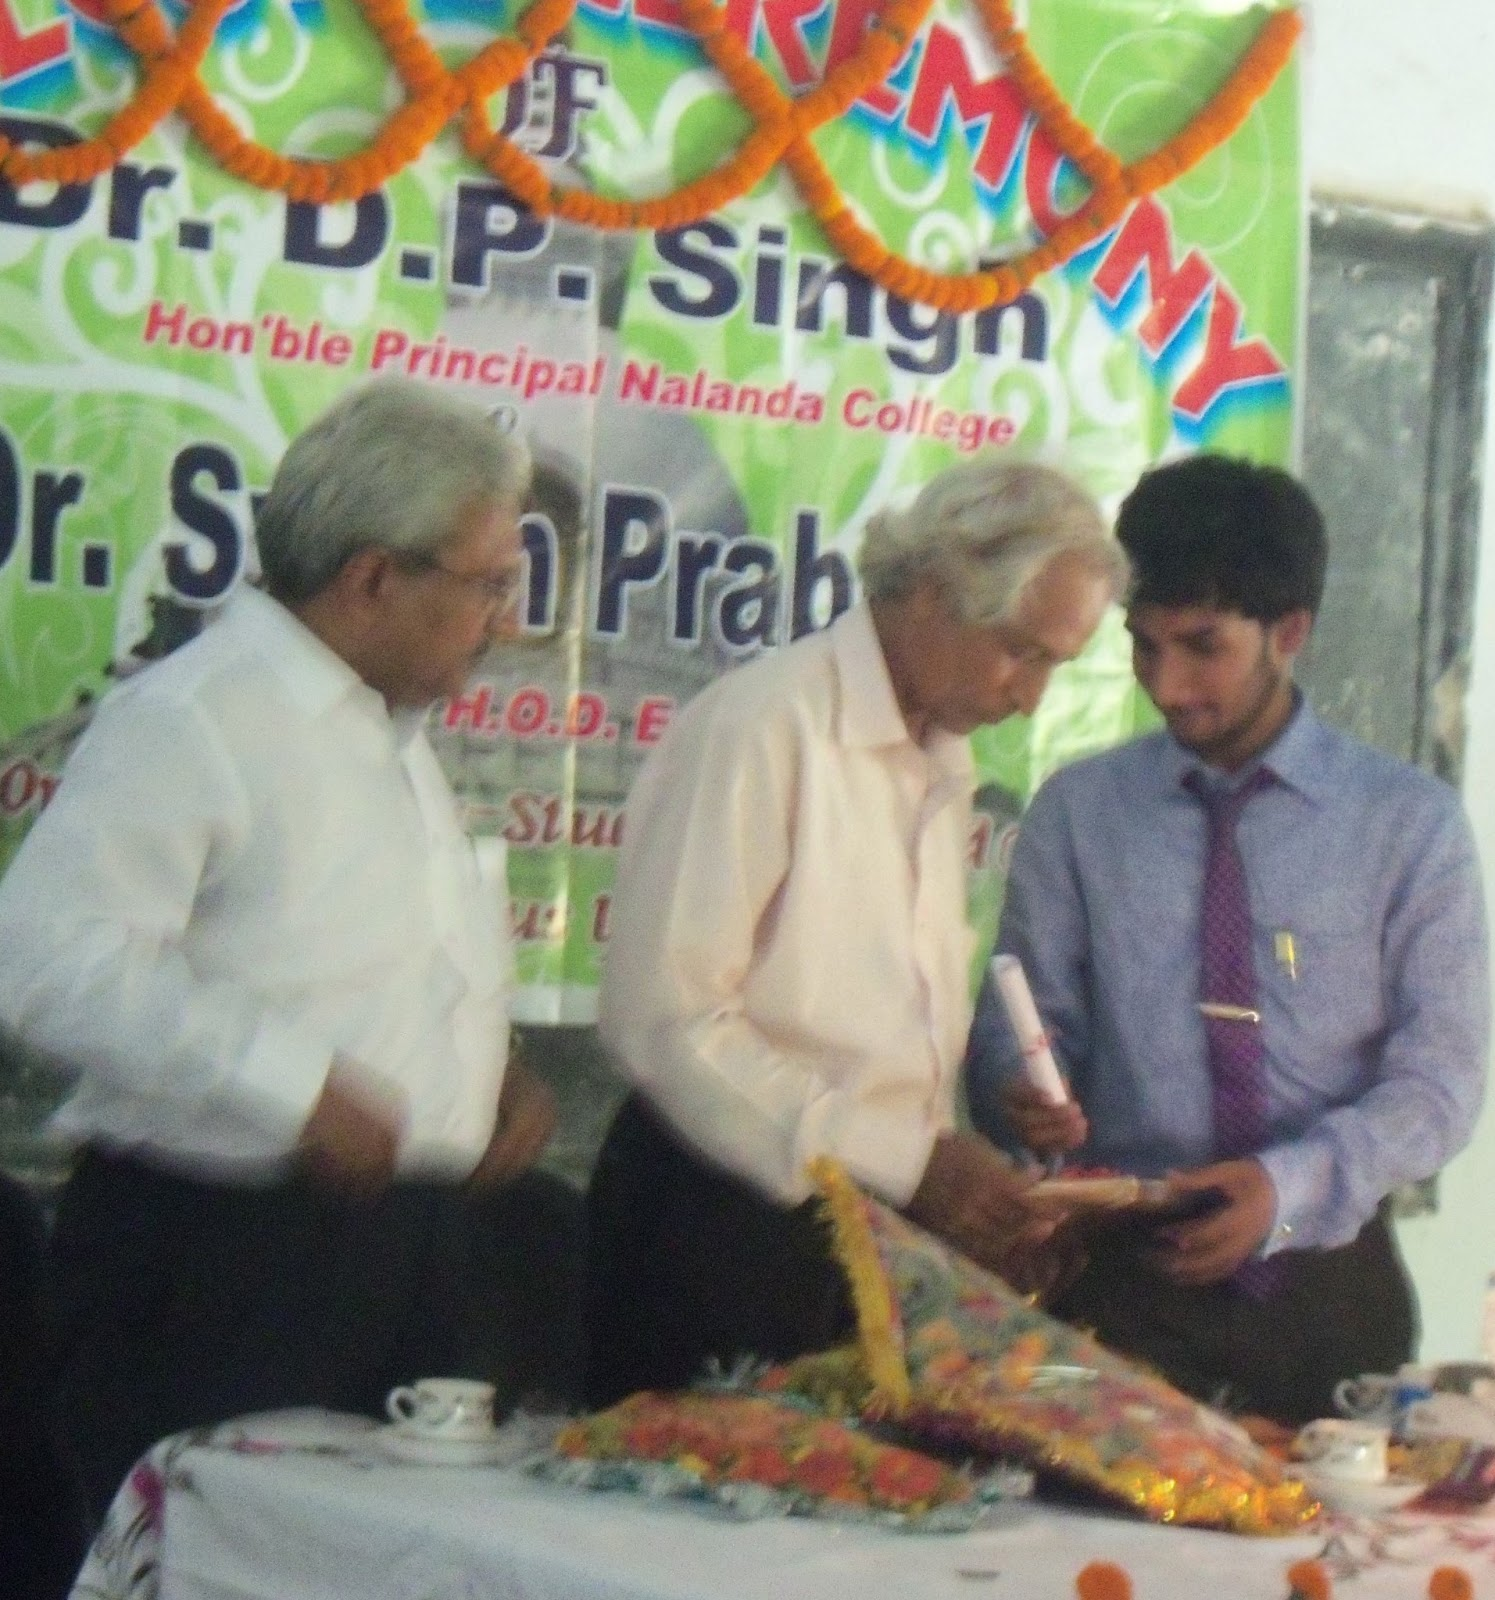 poet alok mishra poems and essays felicitation in nalanda dr d p singh in centre dr swarn prabhat in left and the author and poet alok mishra in right the poem folded